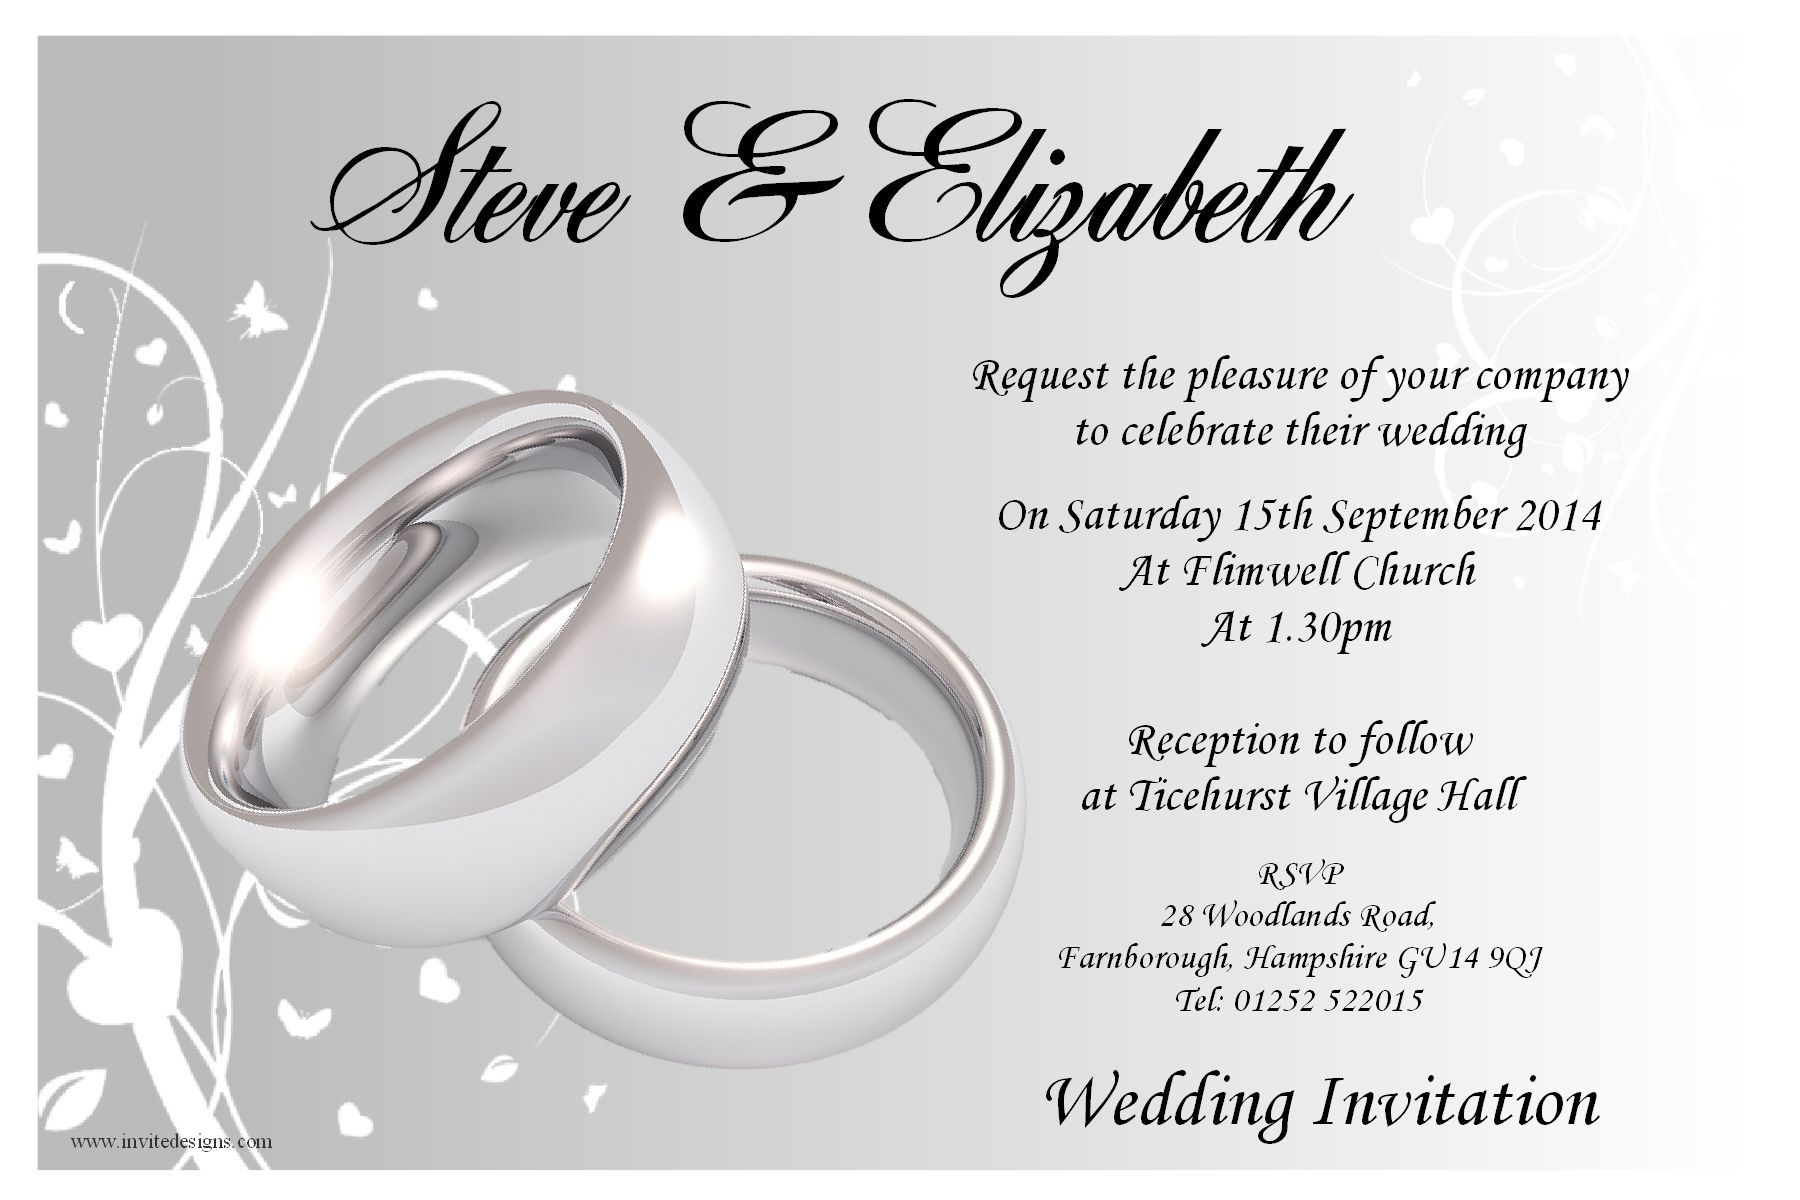 10 Personalised Wedding Invitations With Silver Rings Printed Onto Glossy Photographic Stock Free White Self Seal Envelopes Included